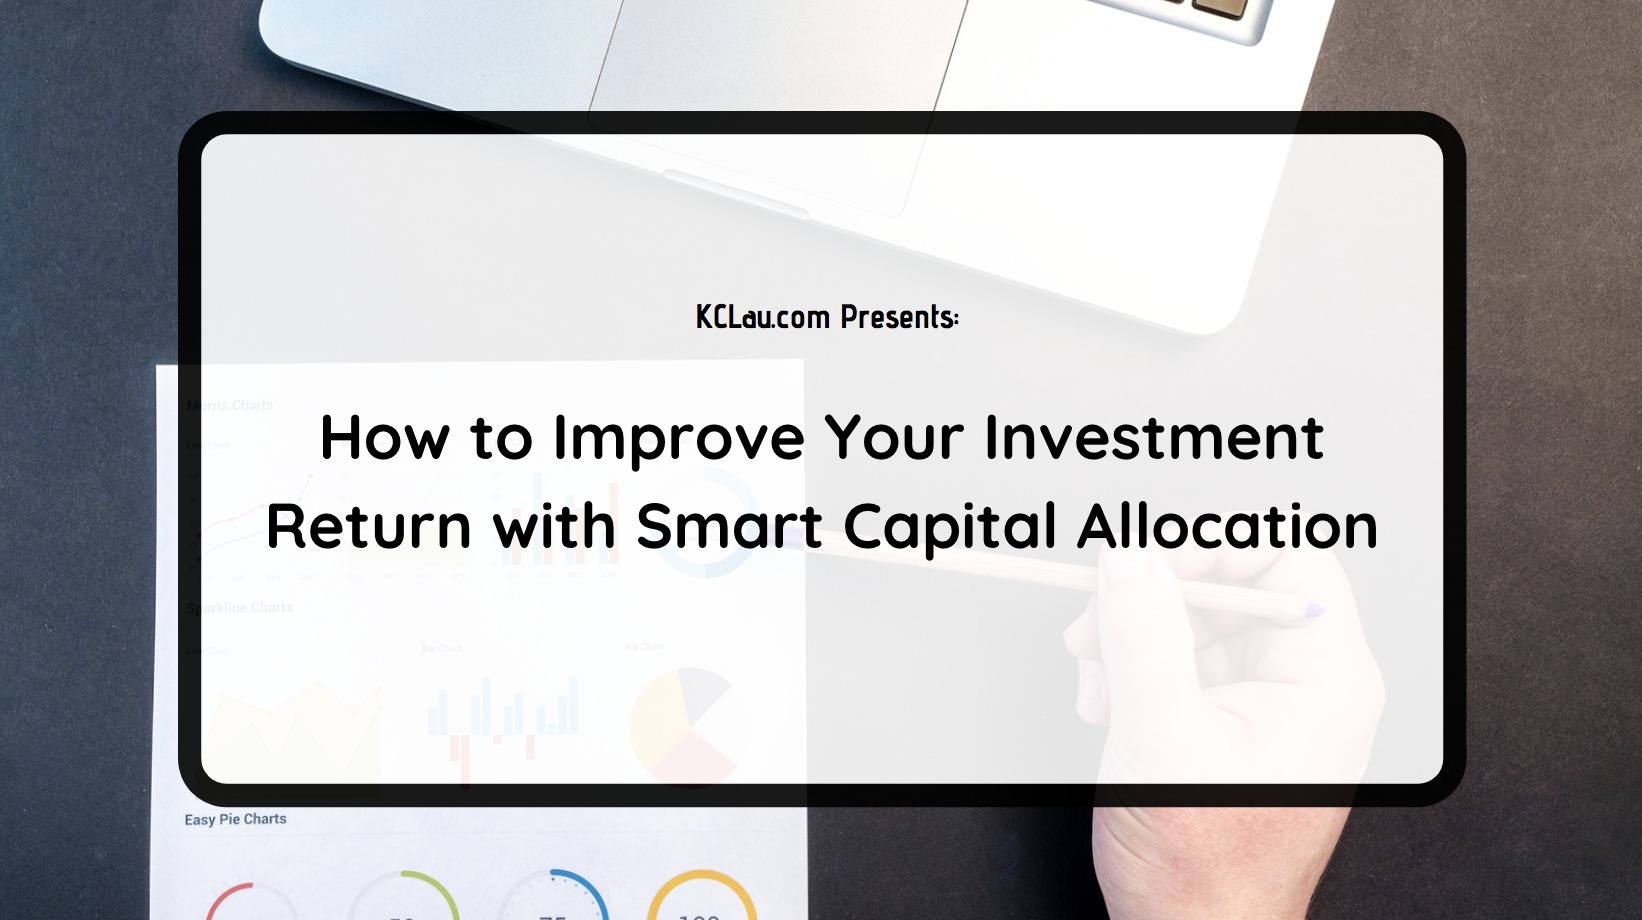 How to Improve Your Investment Return with Smart Capital Allocation